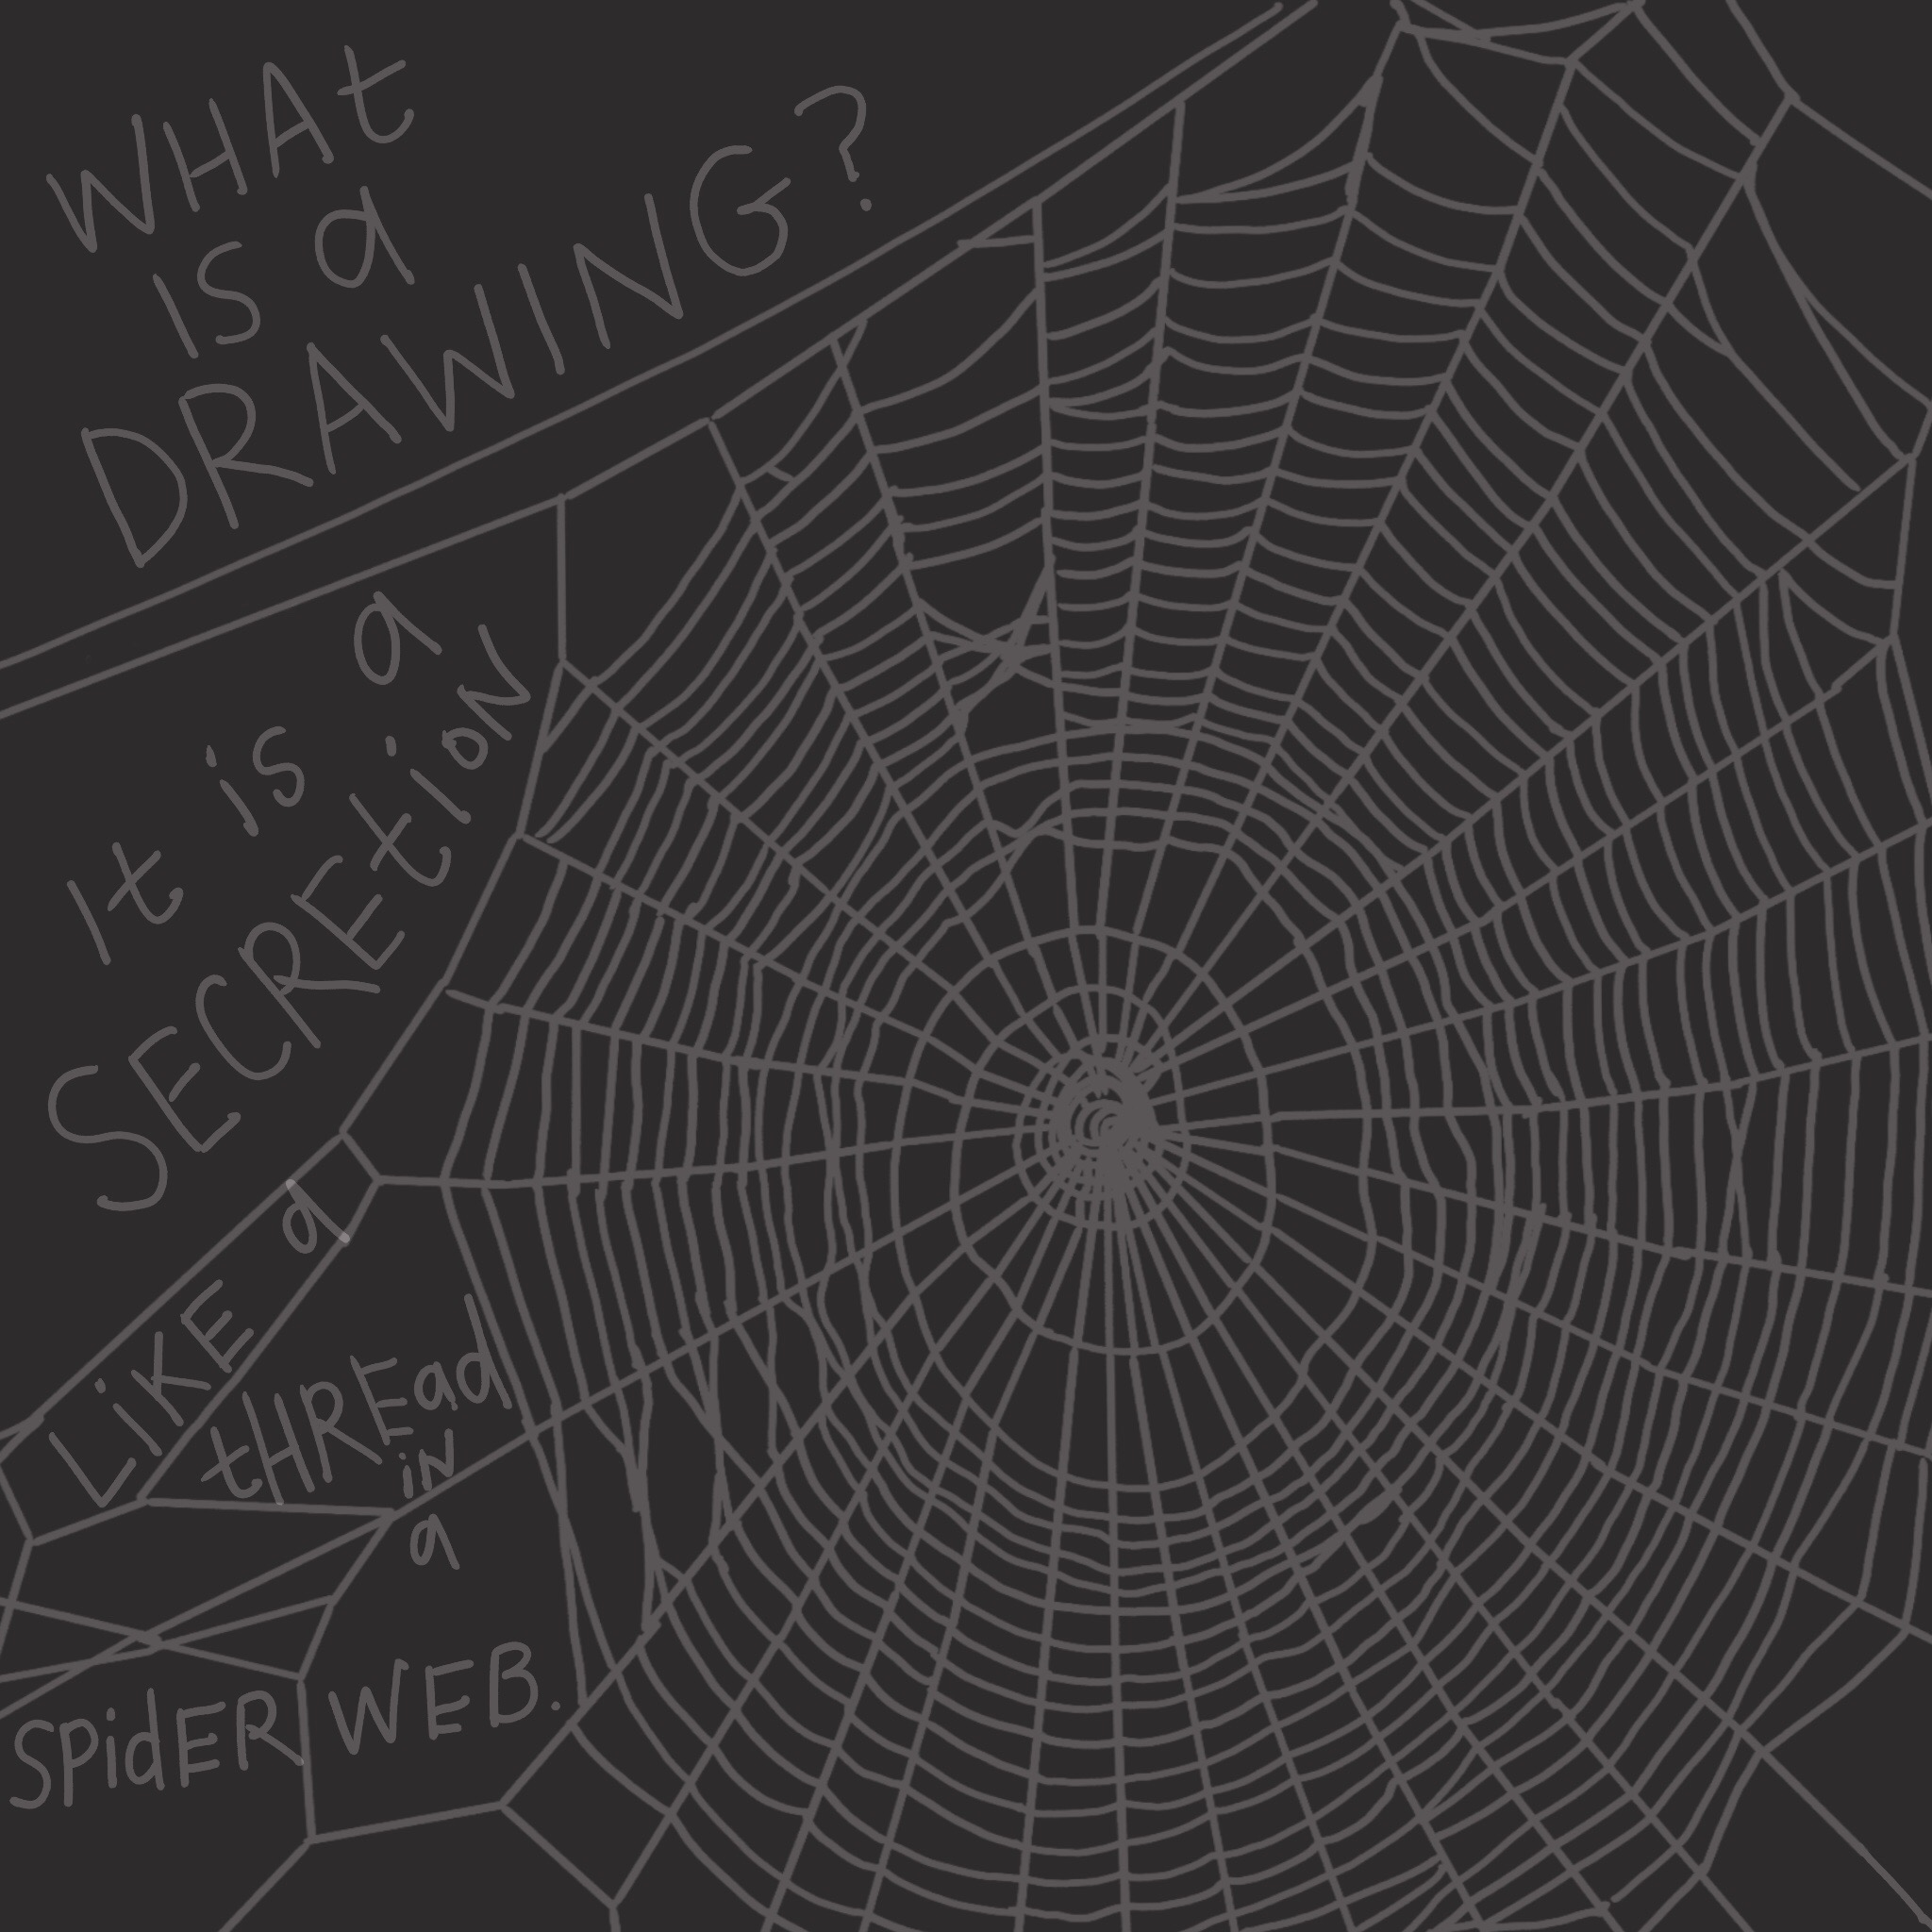 """""""What is a drawing? It is a secretion, like a thread in a spider's web. ... It is a knitting, a spiral, a spiderweb and other significant organizations of space."""" -Louise Bourgeois"""